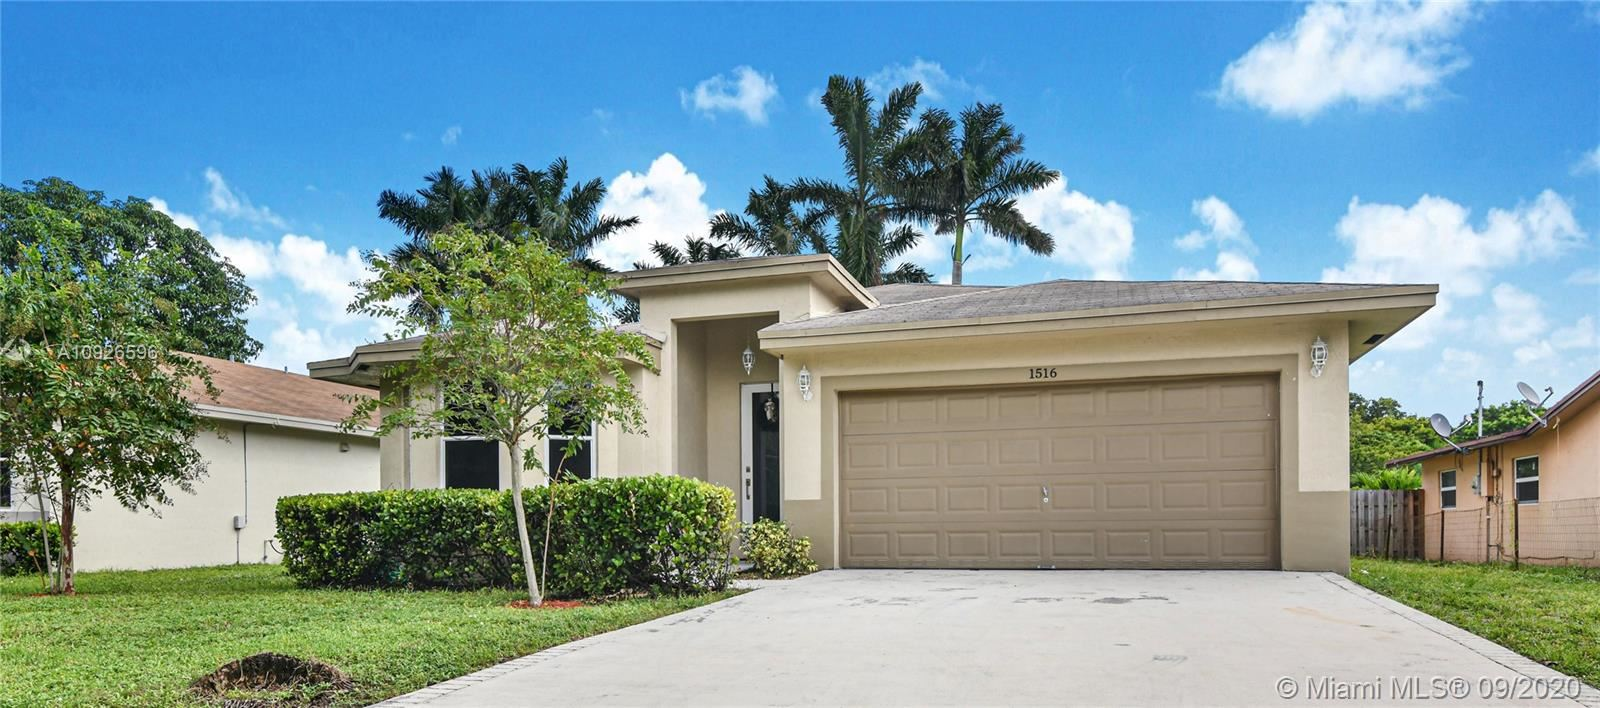 1516 SW 29th Ter, Fort Lauderdale, FL 33312 - #: A10926596